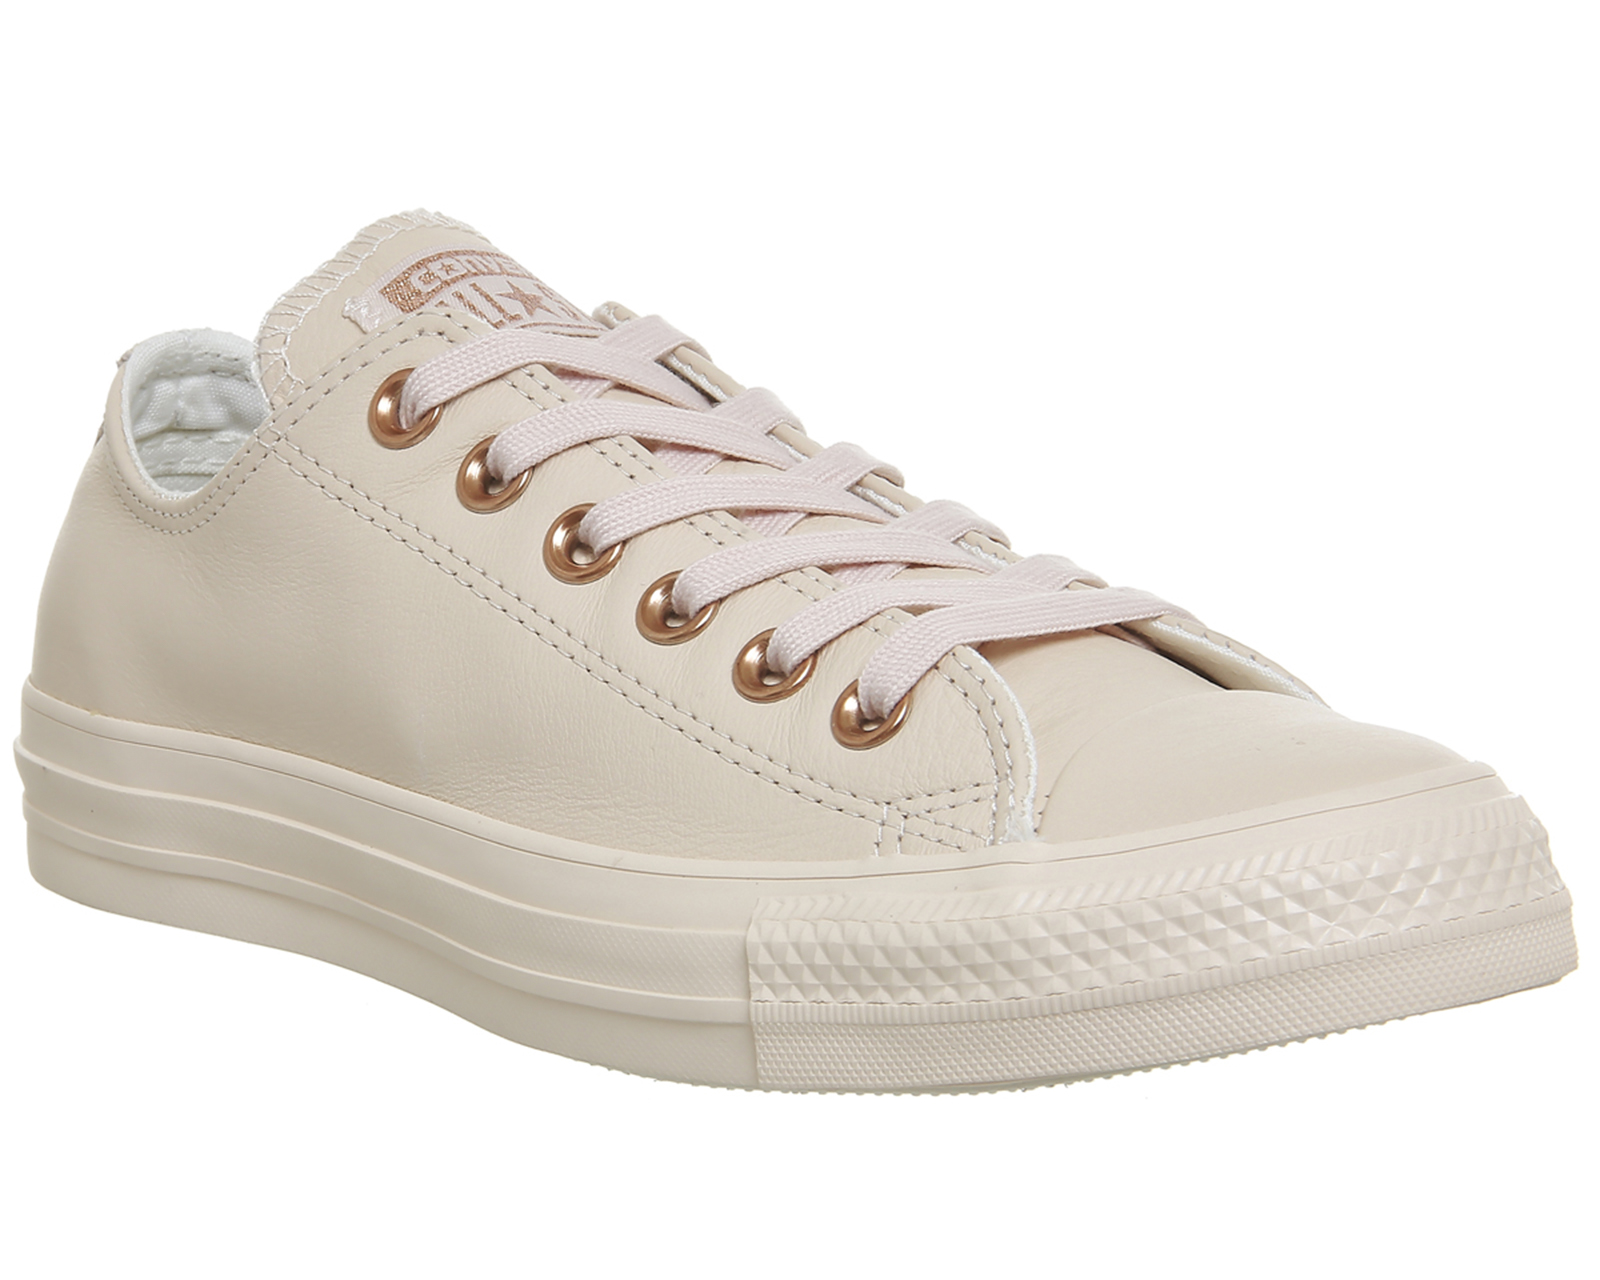 0f8e267fd87f Sentinel Womens Converse All Star Low Leather Pastel Rose Tan Rose Gold  Trainers Shoes